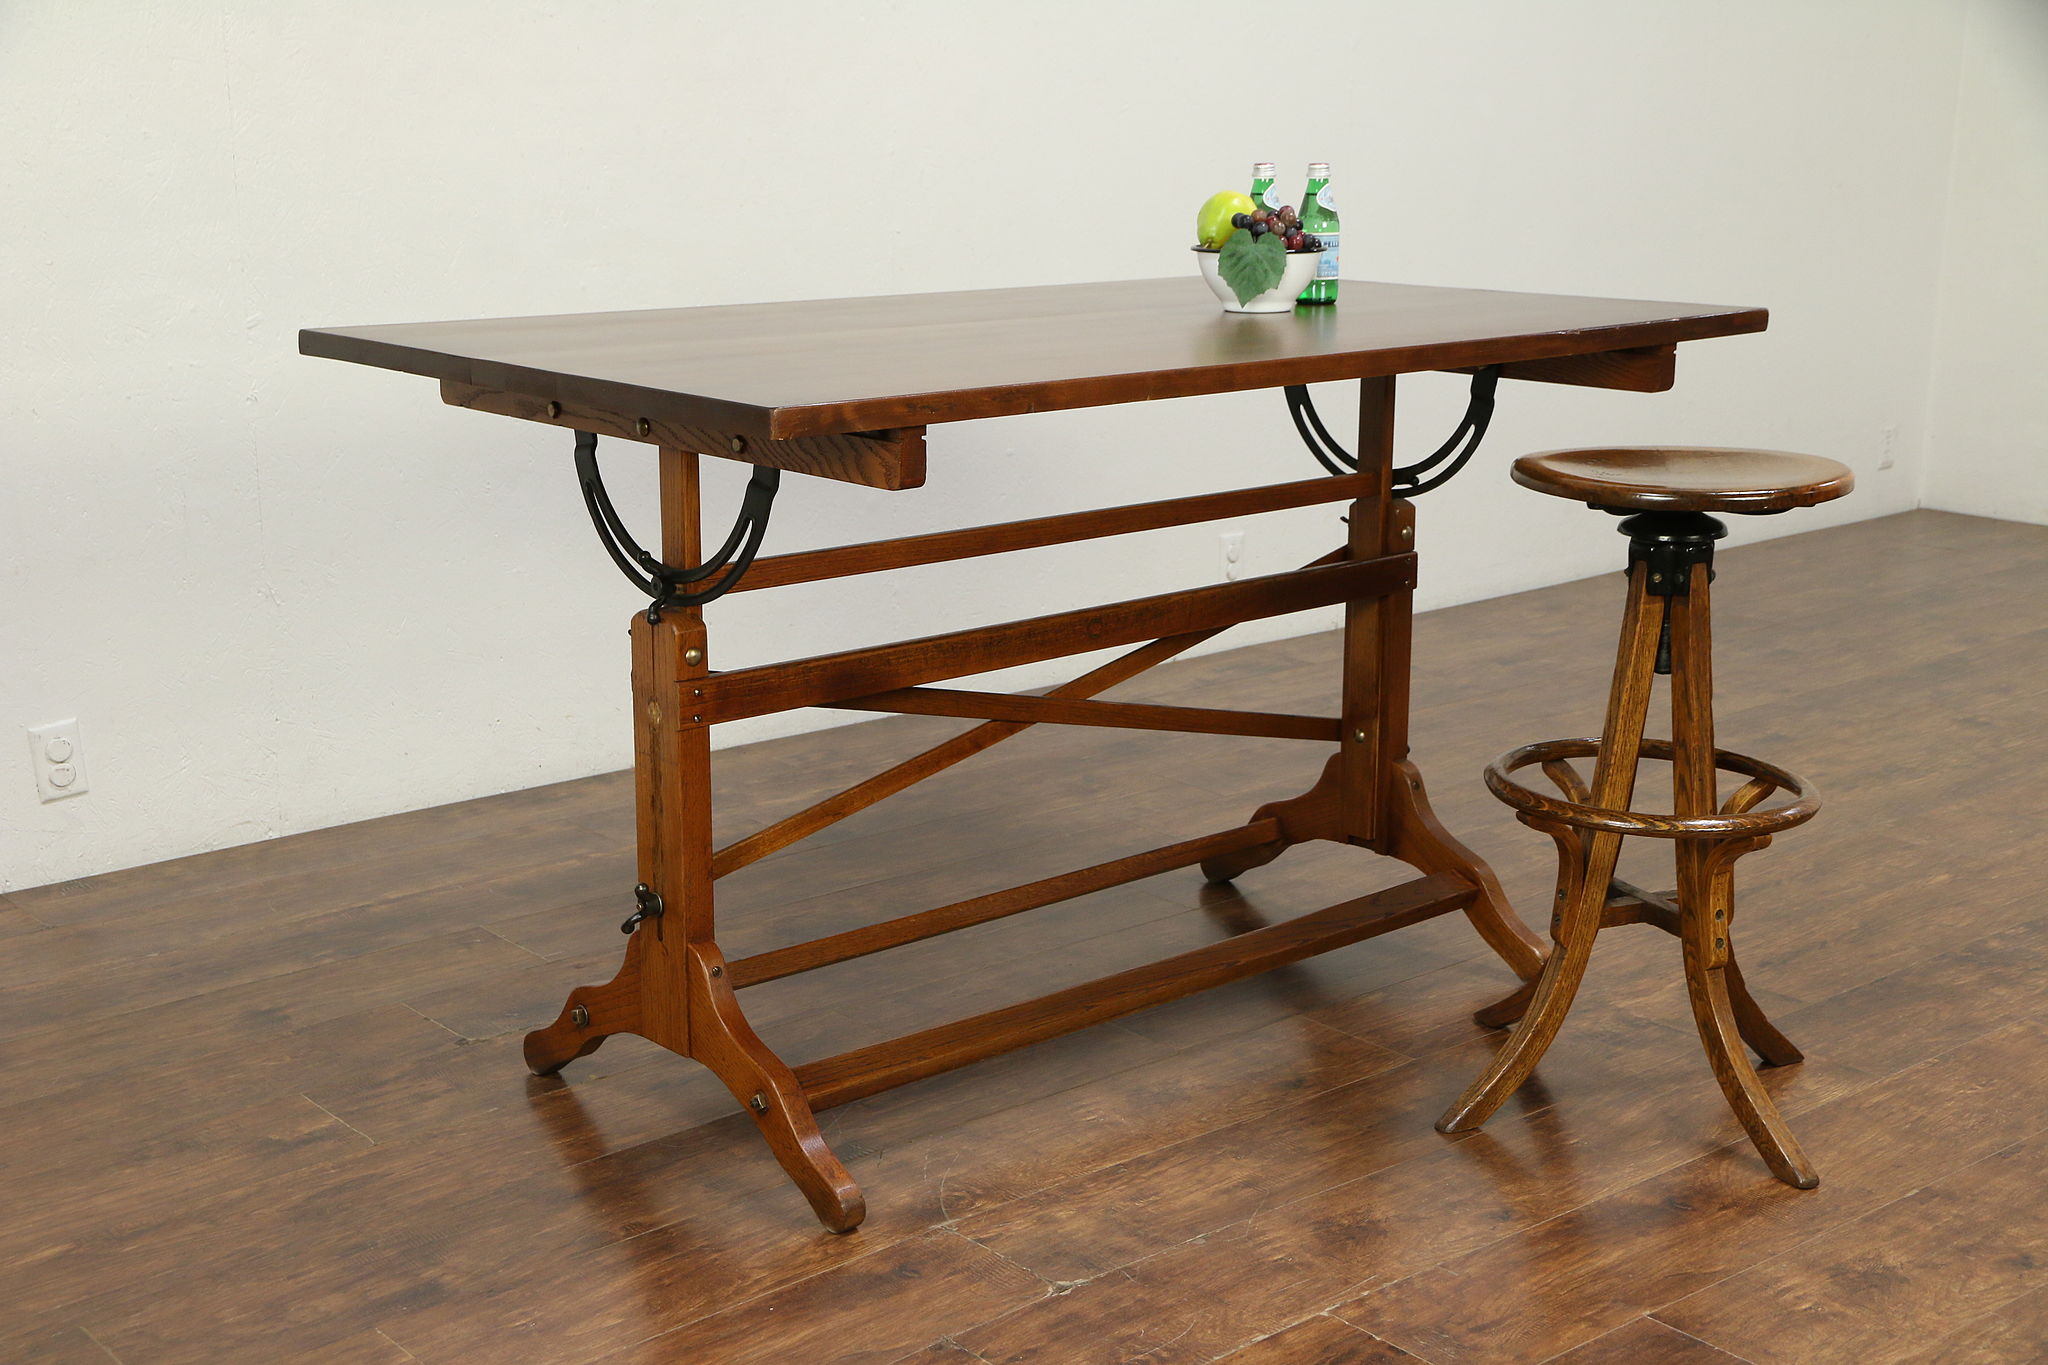 Sold Drafting Or Artist Desk Drawing Or Wine Table Island Signed Post 30112 Harp Gallery Antiques Furniture